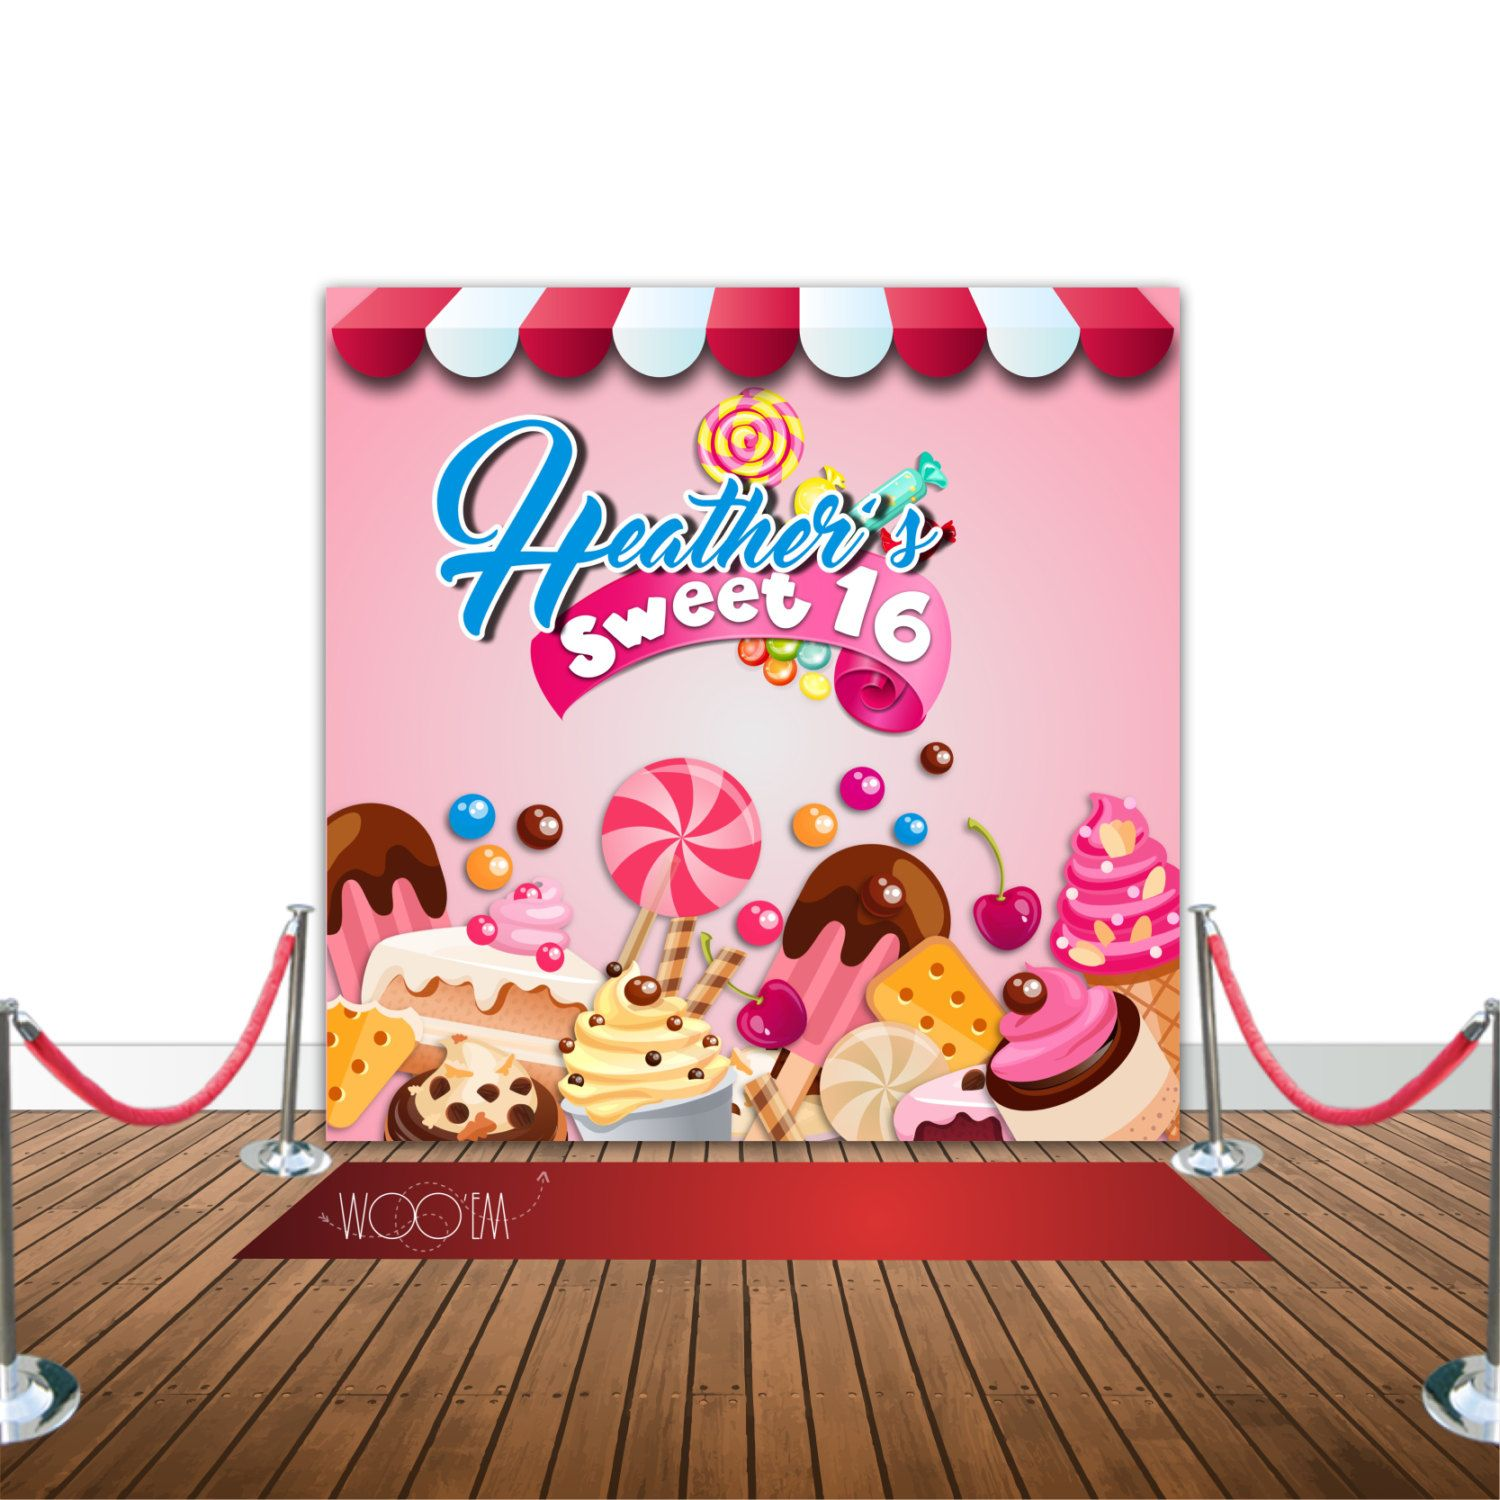 Design banner for etsy - Candy Themed Sweet Sixteen Banner Backdrop Step Repeat Design Print And Ship